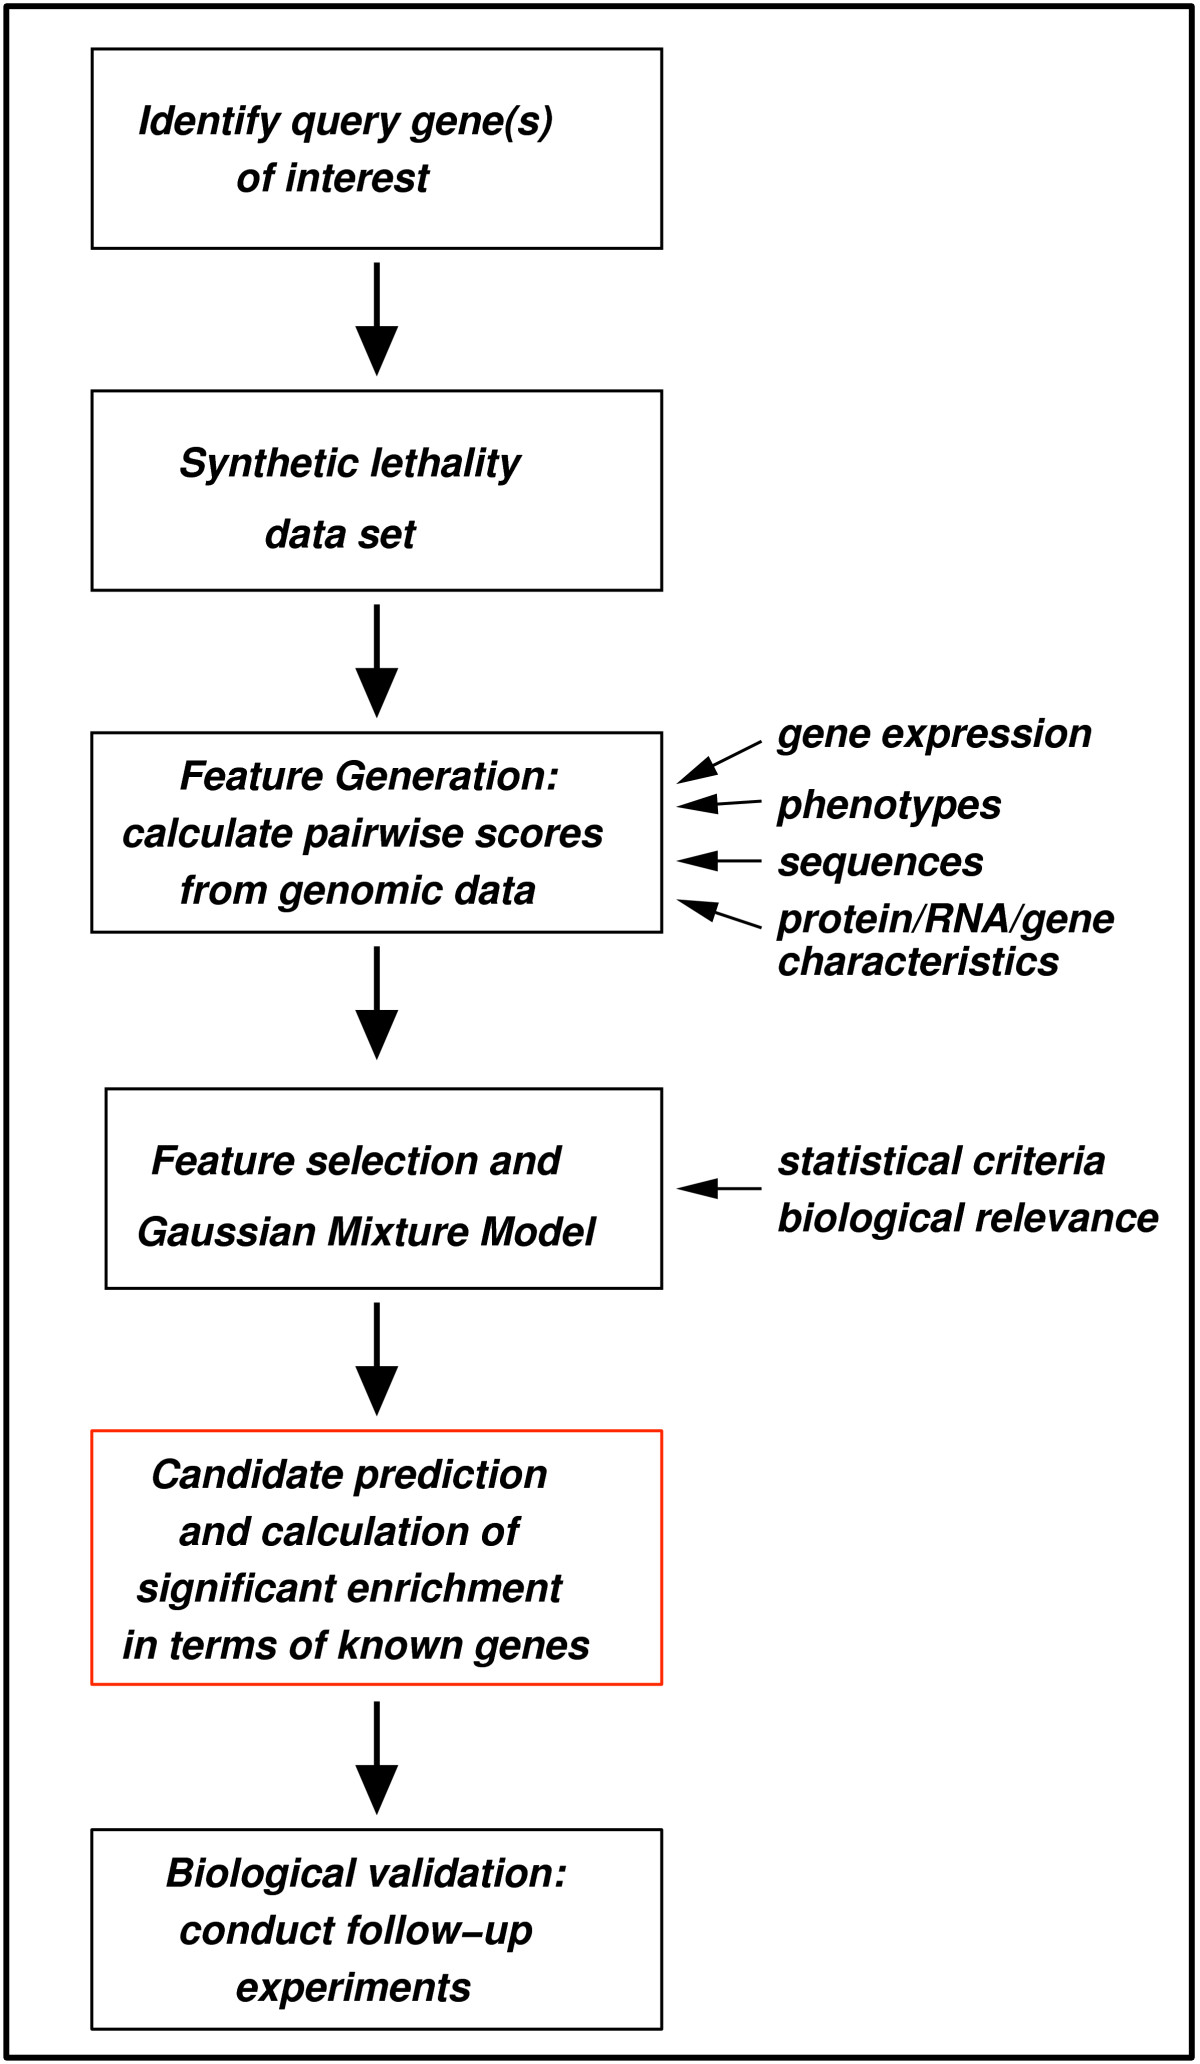 https://static-content.springer.com/image/art%3A10.1186%2F1752-0509-2-3/MediaObjects/12918_2007_Article_160_Fig1_HTML.jpg